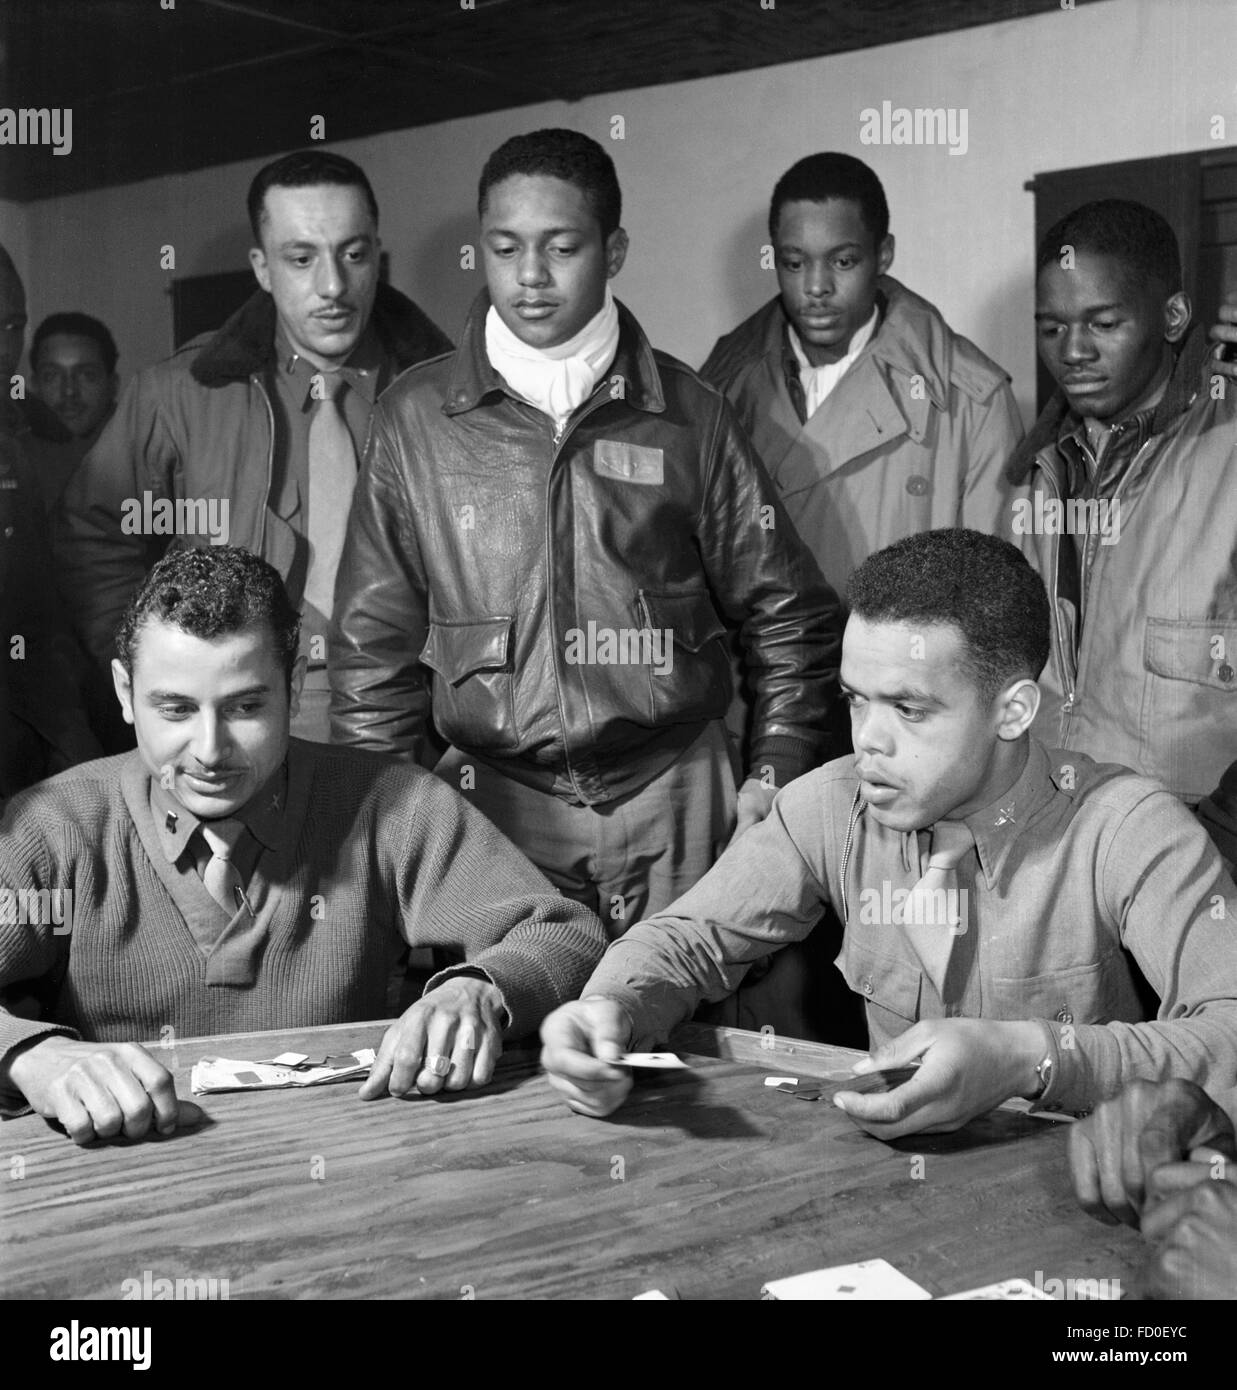 Tuskegee airmen from the 332nd Fighter Group playing cards in Ramitelli, Italy in March 1945. - Stock Image